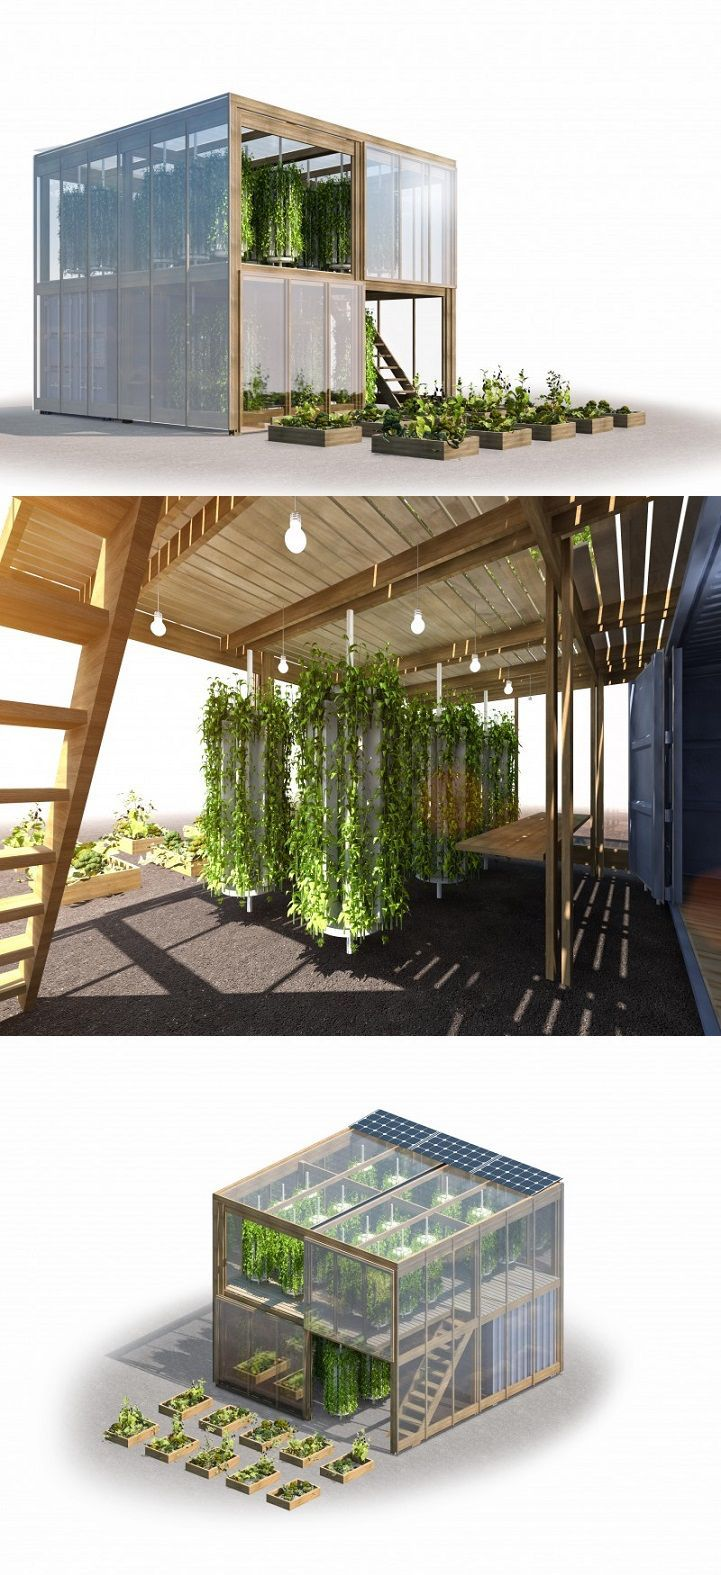 40 best greenhouse and urban farming images on pinterest